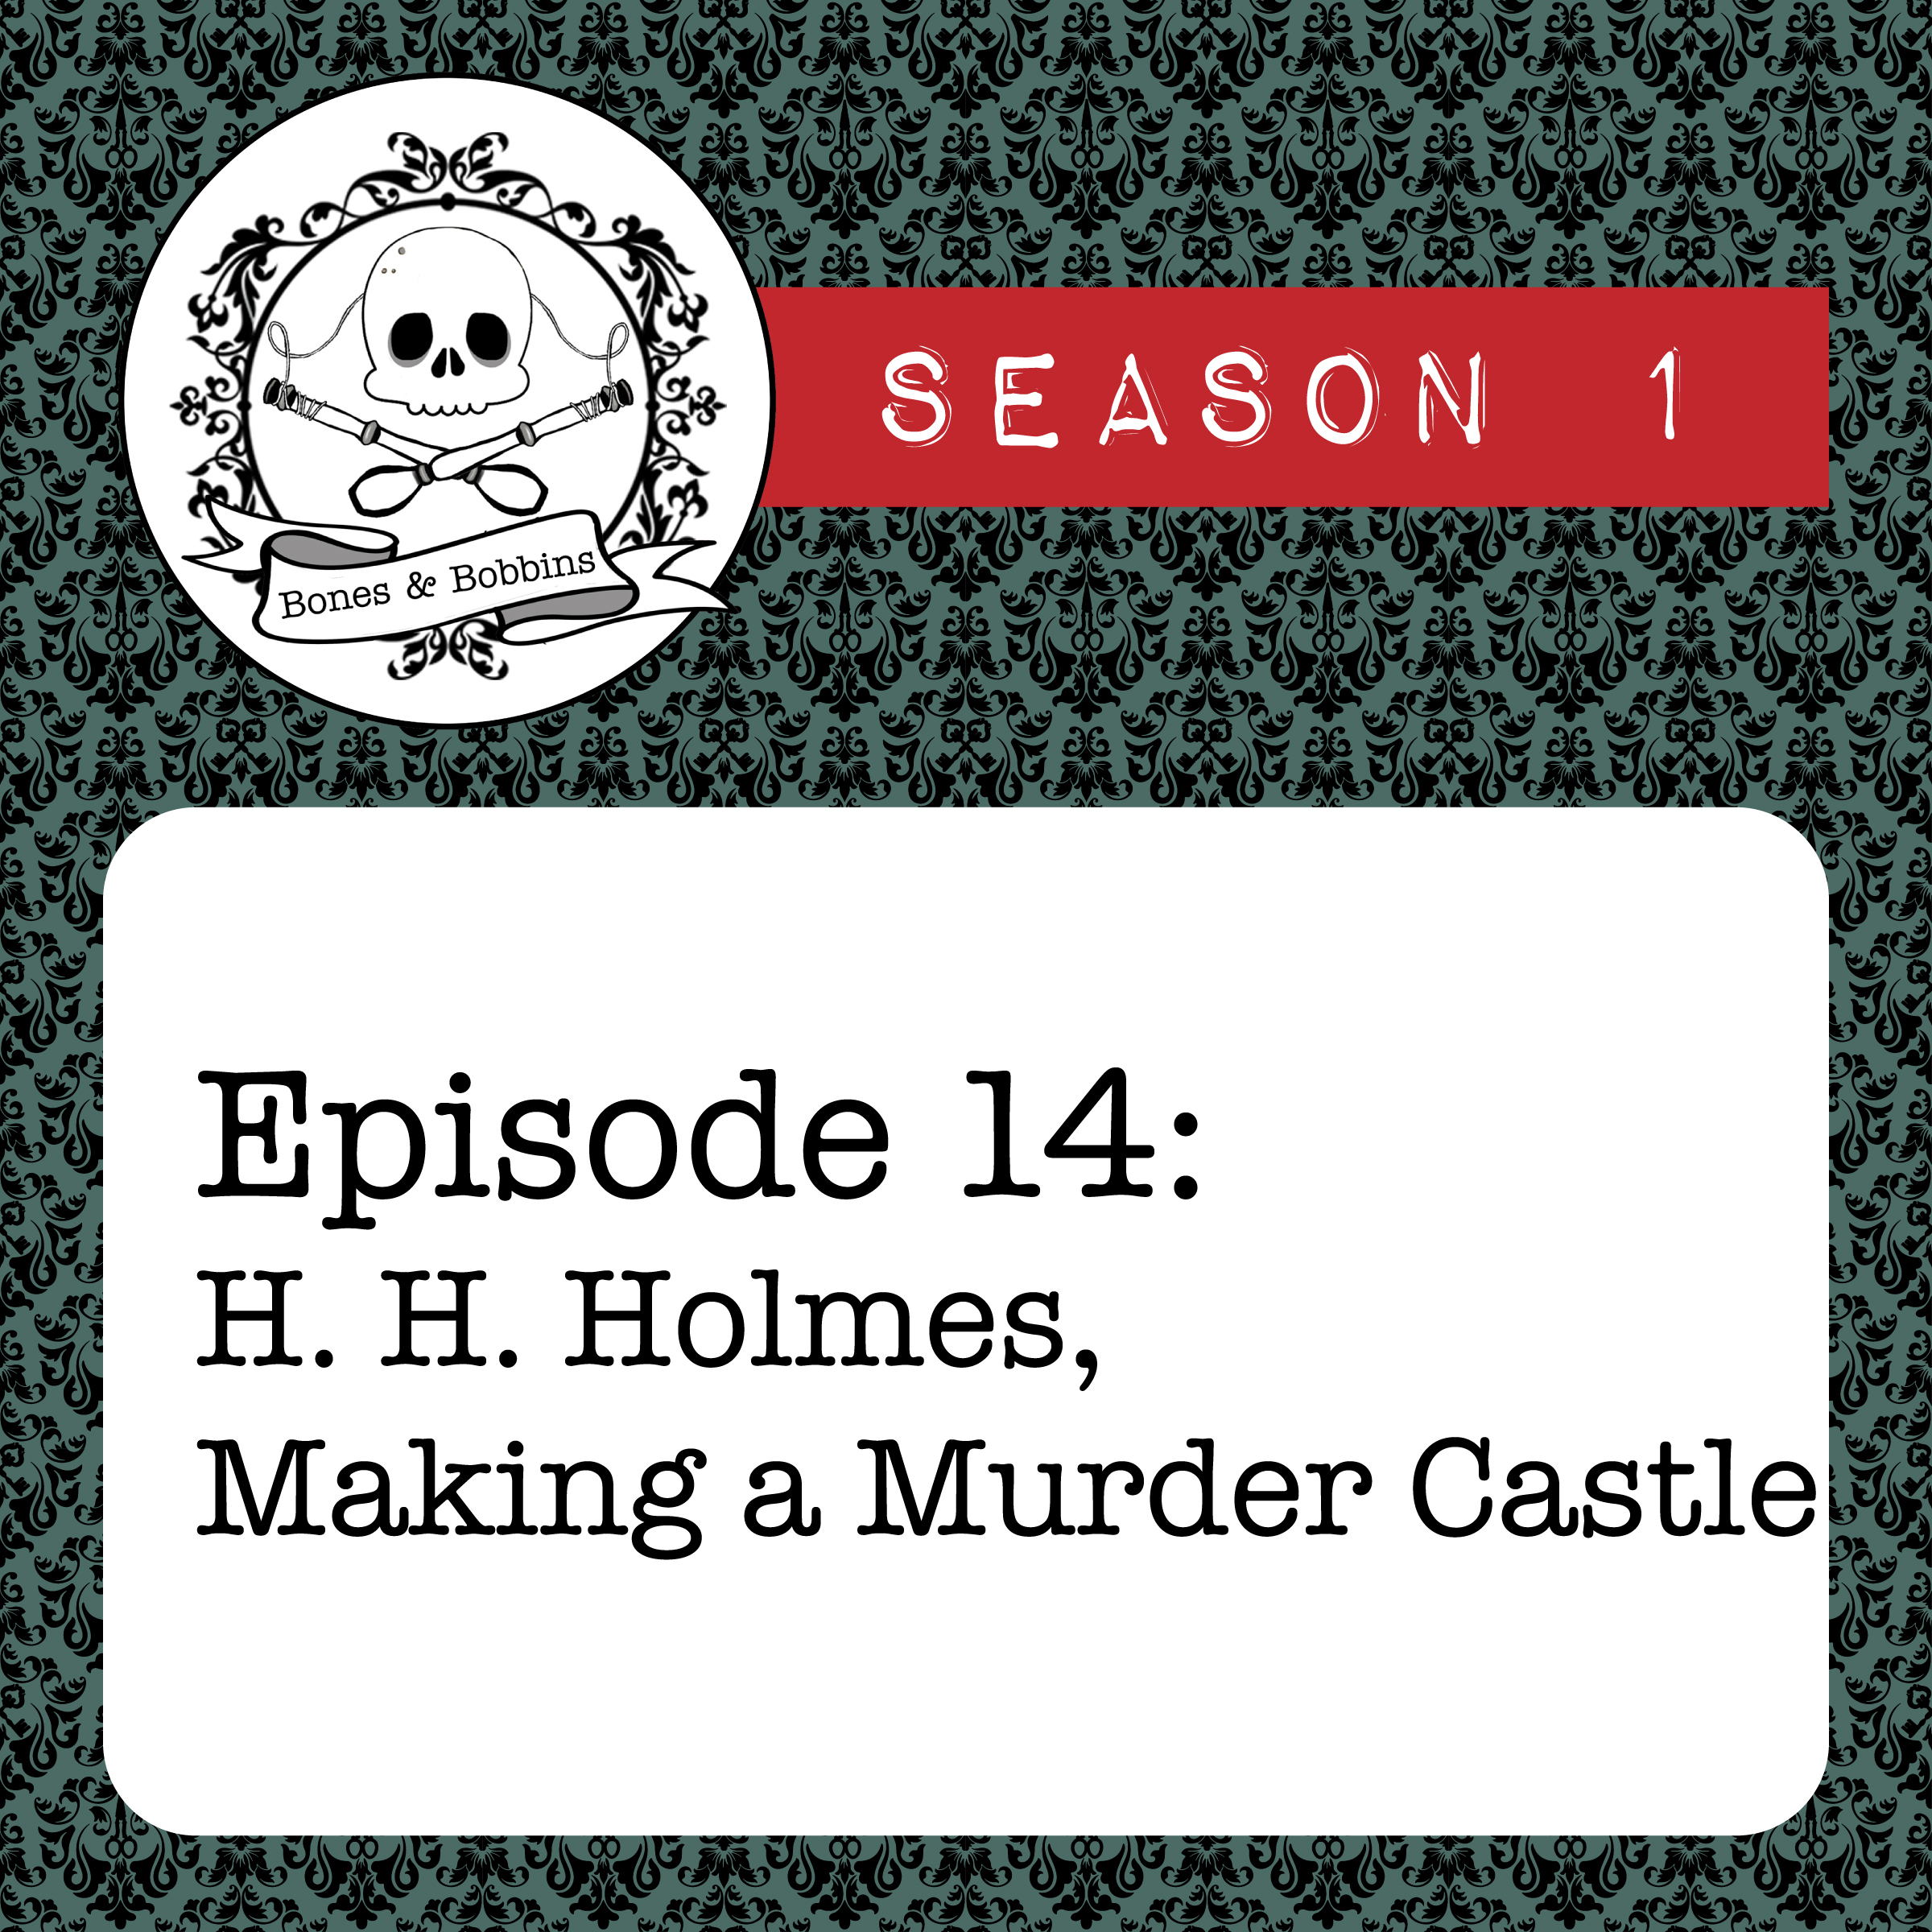 The Bones & Bobbins Podcast, Season 1, Episode 14: H. H. Holmes, Making a Murder Castle